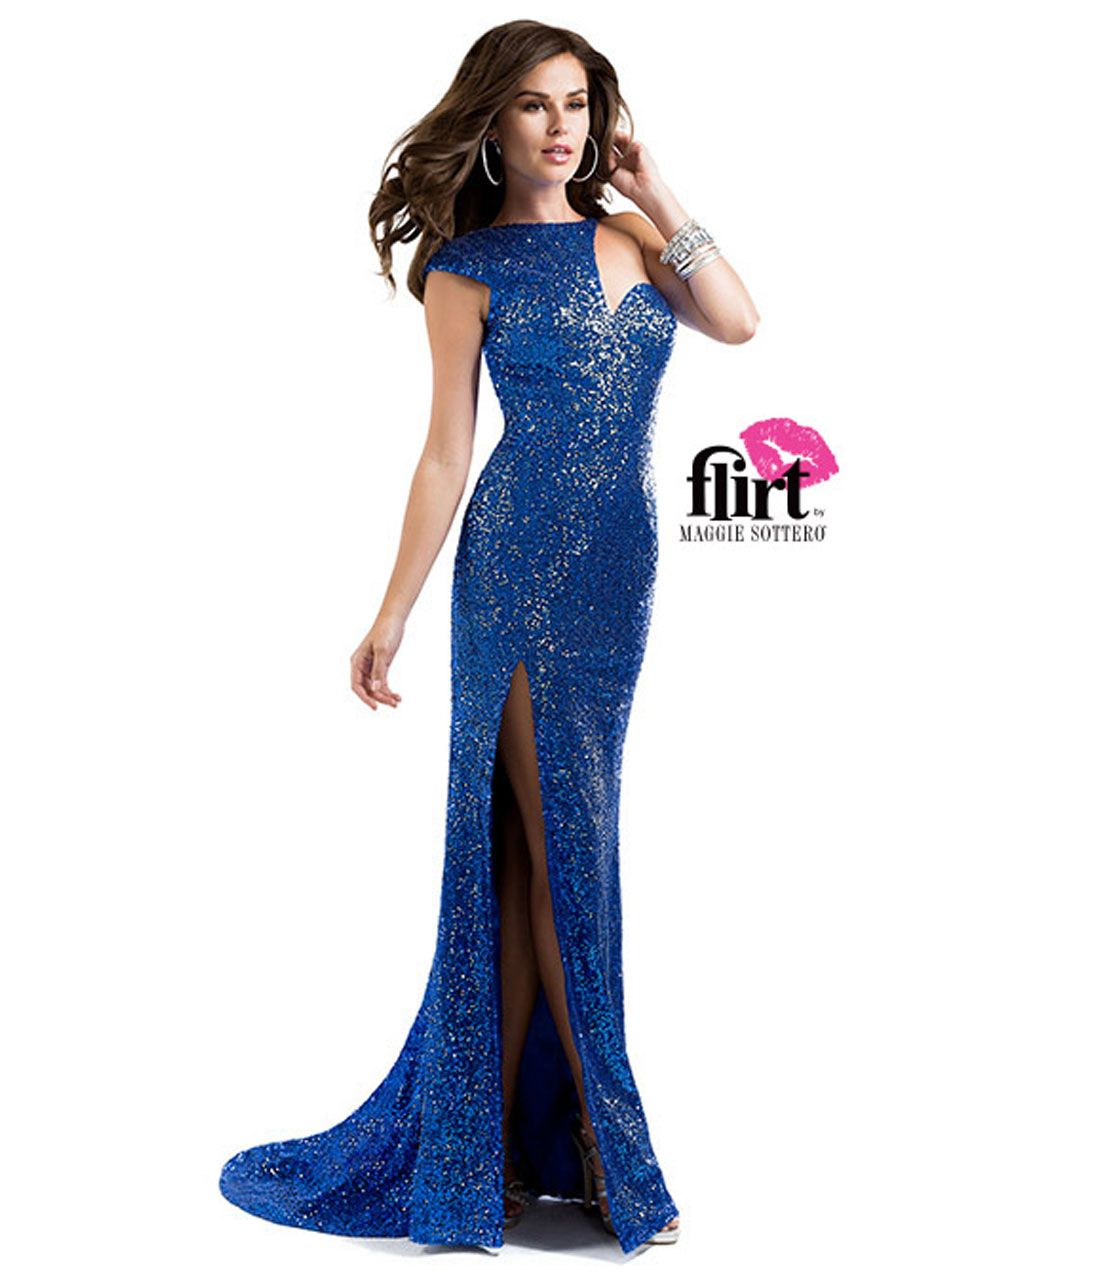 f5f40b37c16 Flirt by Maggie Sottero 2014 Prom Dresses - Brilliant Sapphire Sequin Dress  with Asymmetical Cap Sleeve (38630-P5807) va...Price -  298.00-qOmBTQ8N